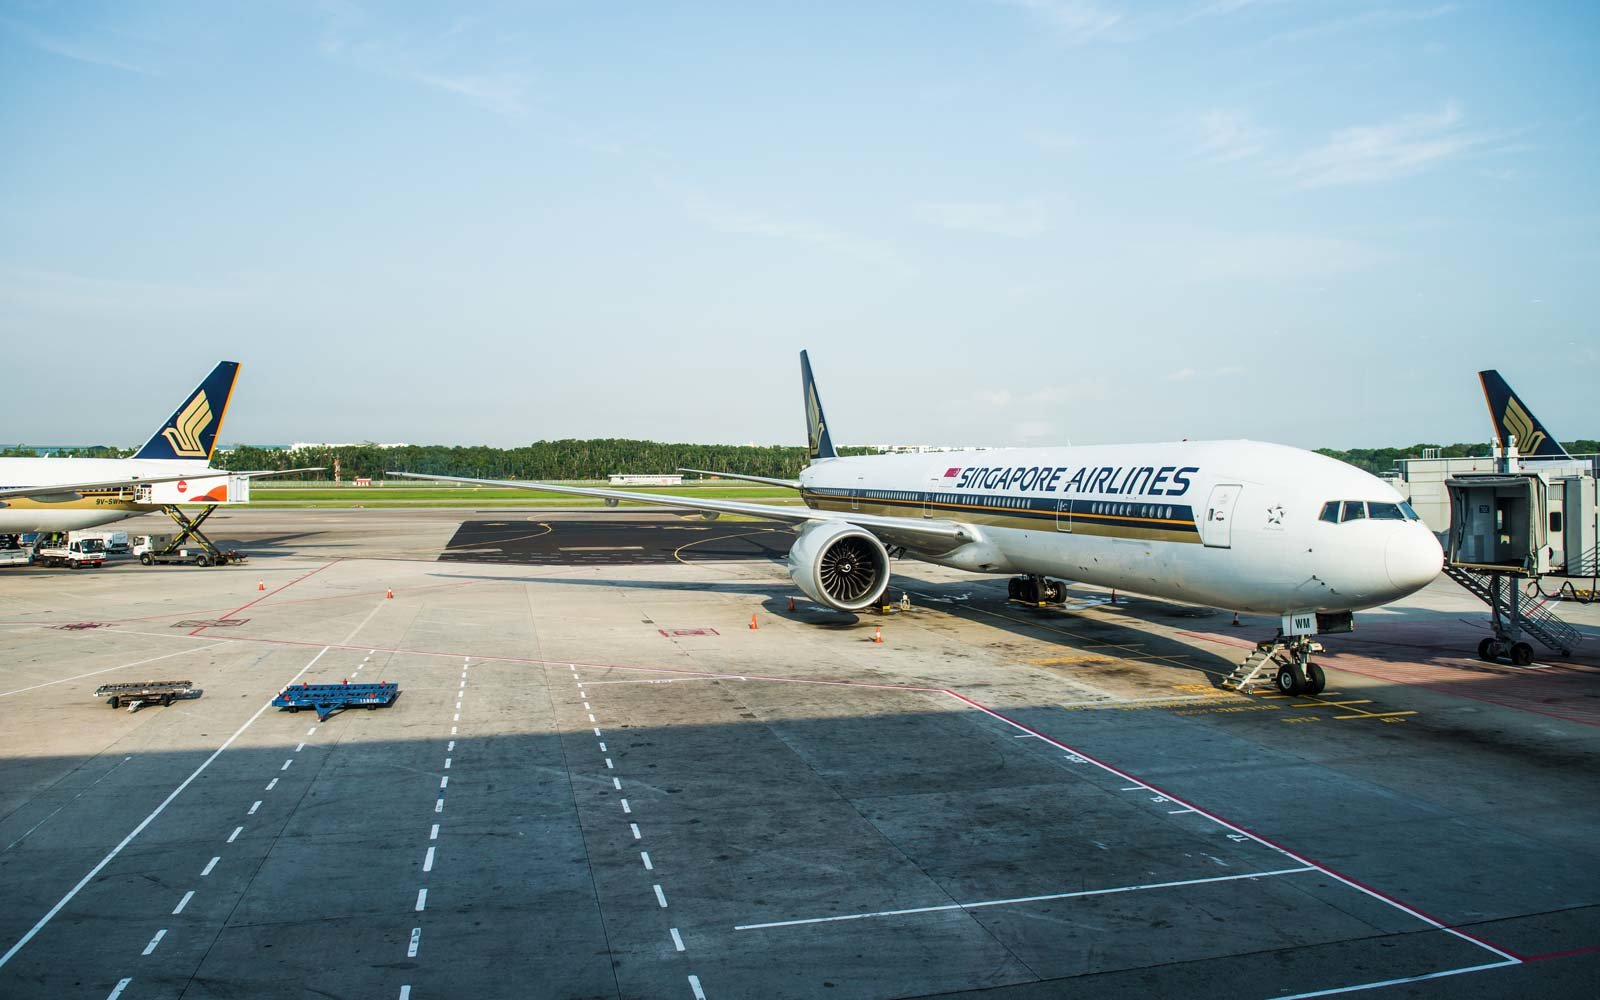 Singapore Airlines planes at Changi airport